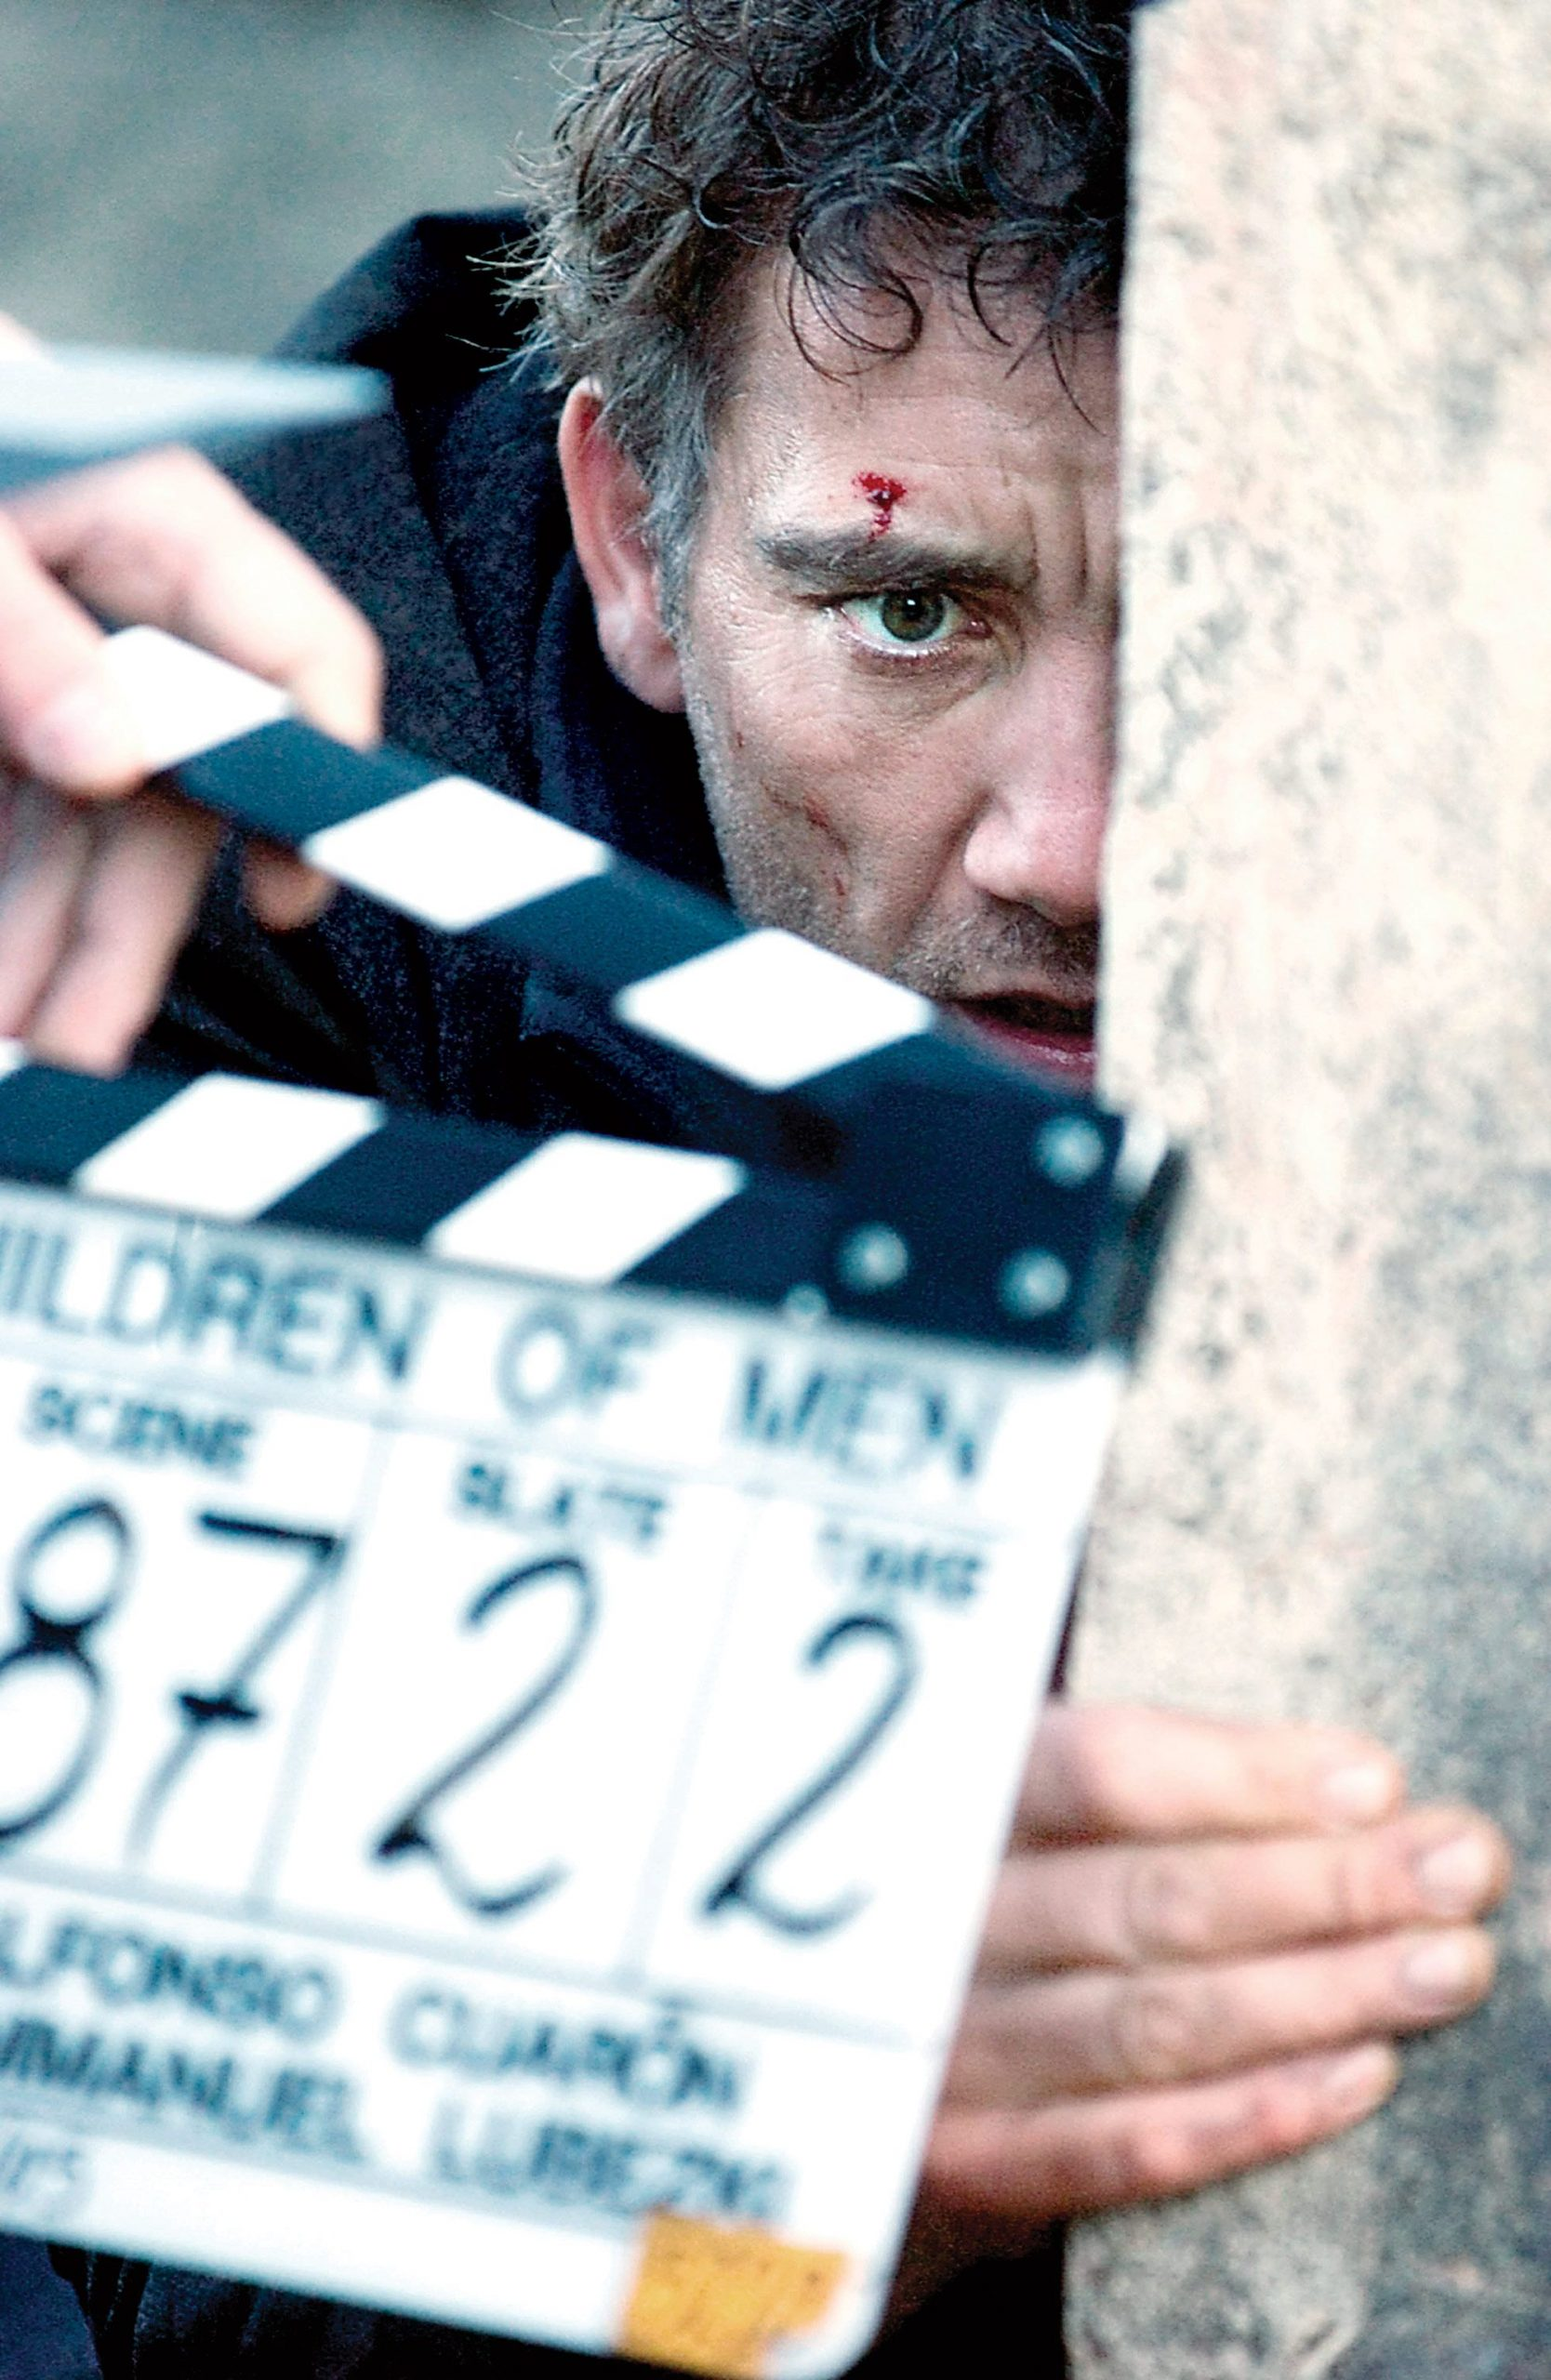 The Future is Now: Alfonso Cuarón's 'Children of Men' Paints a Bleak Picture of a World Devoid of Humanity